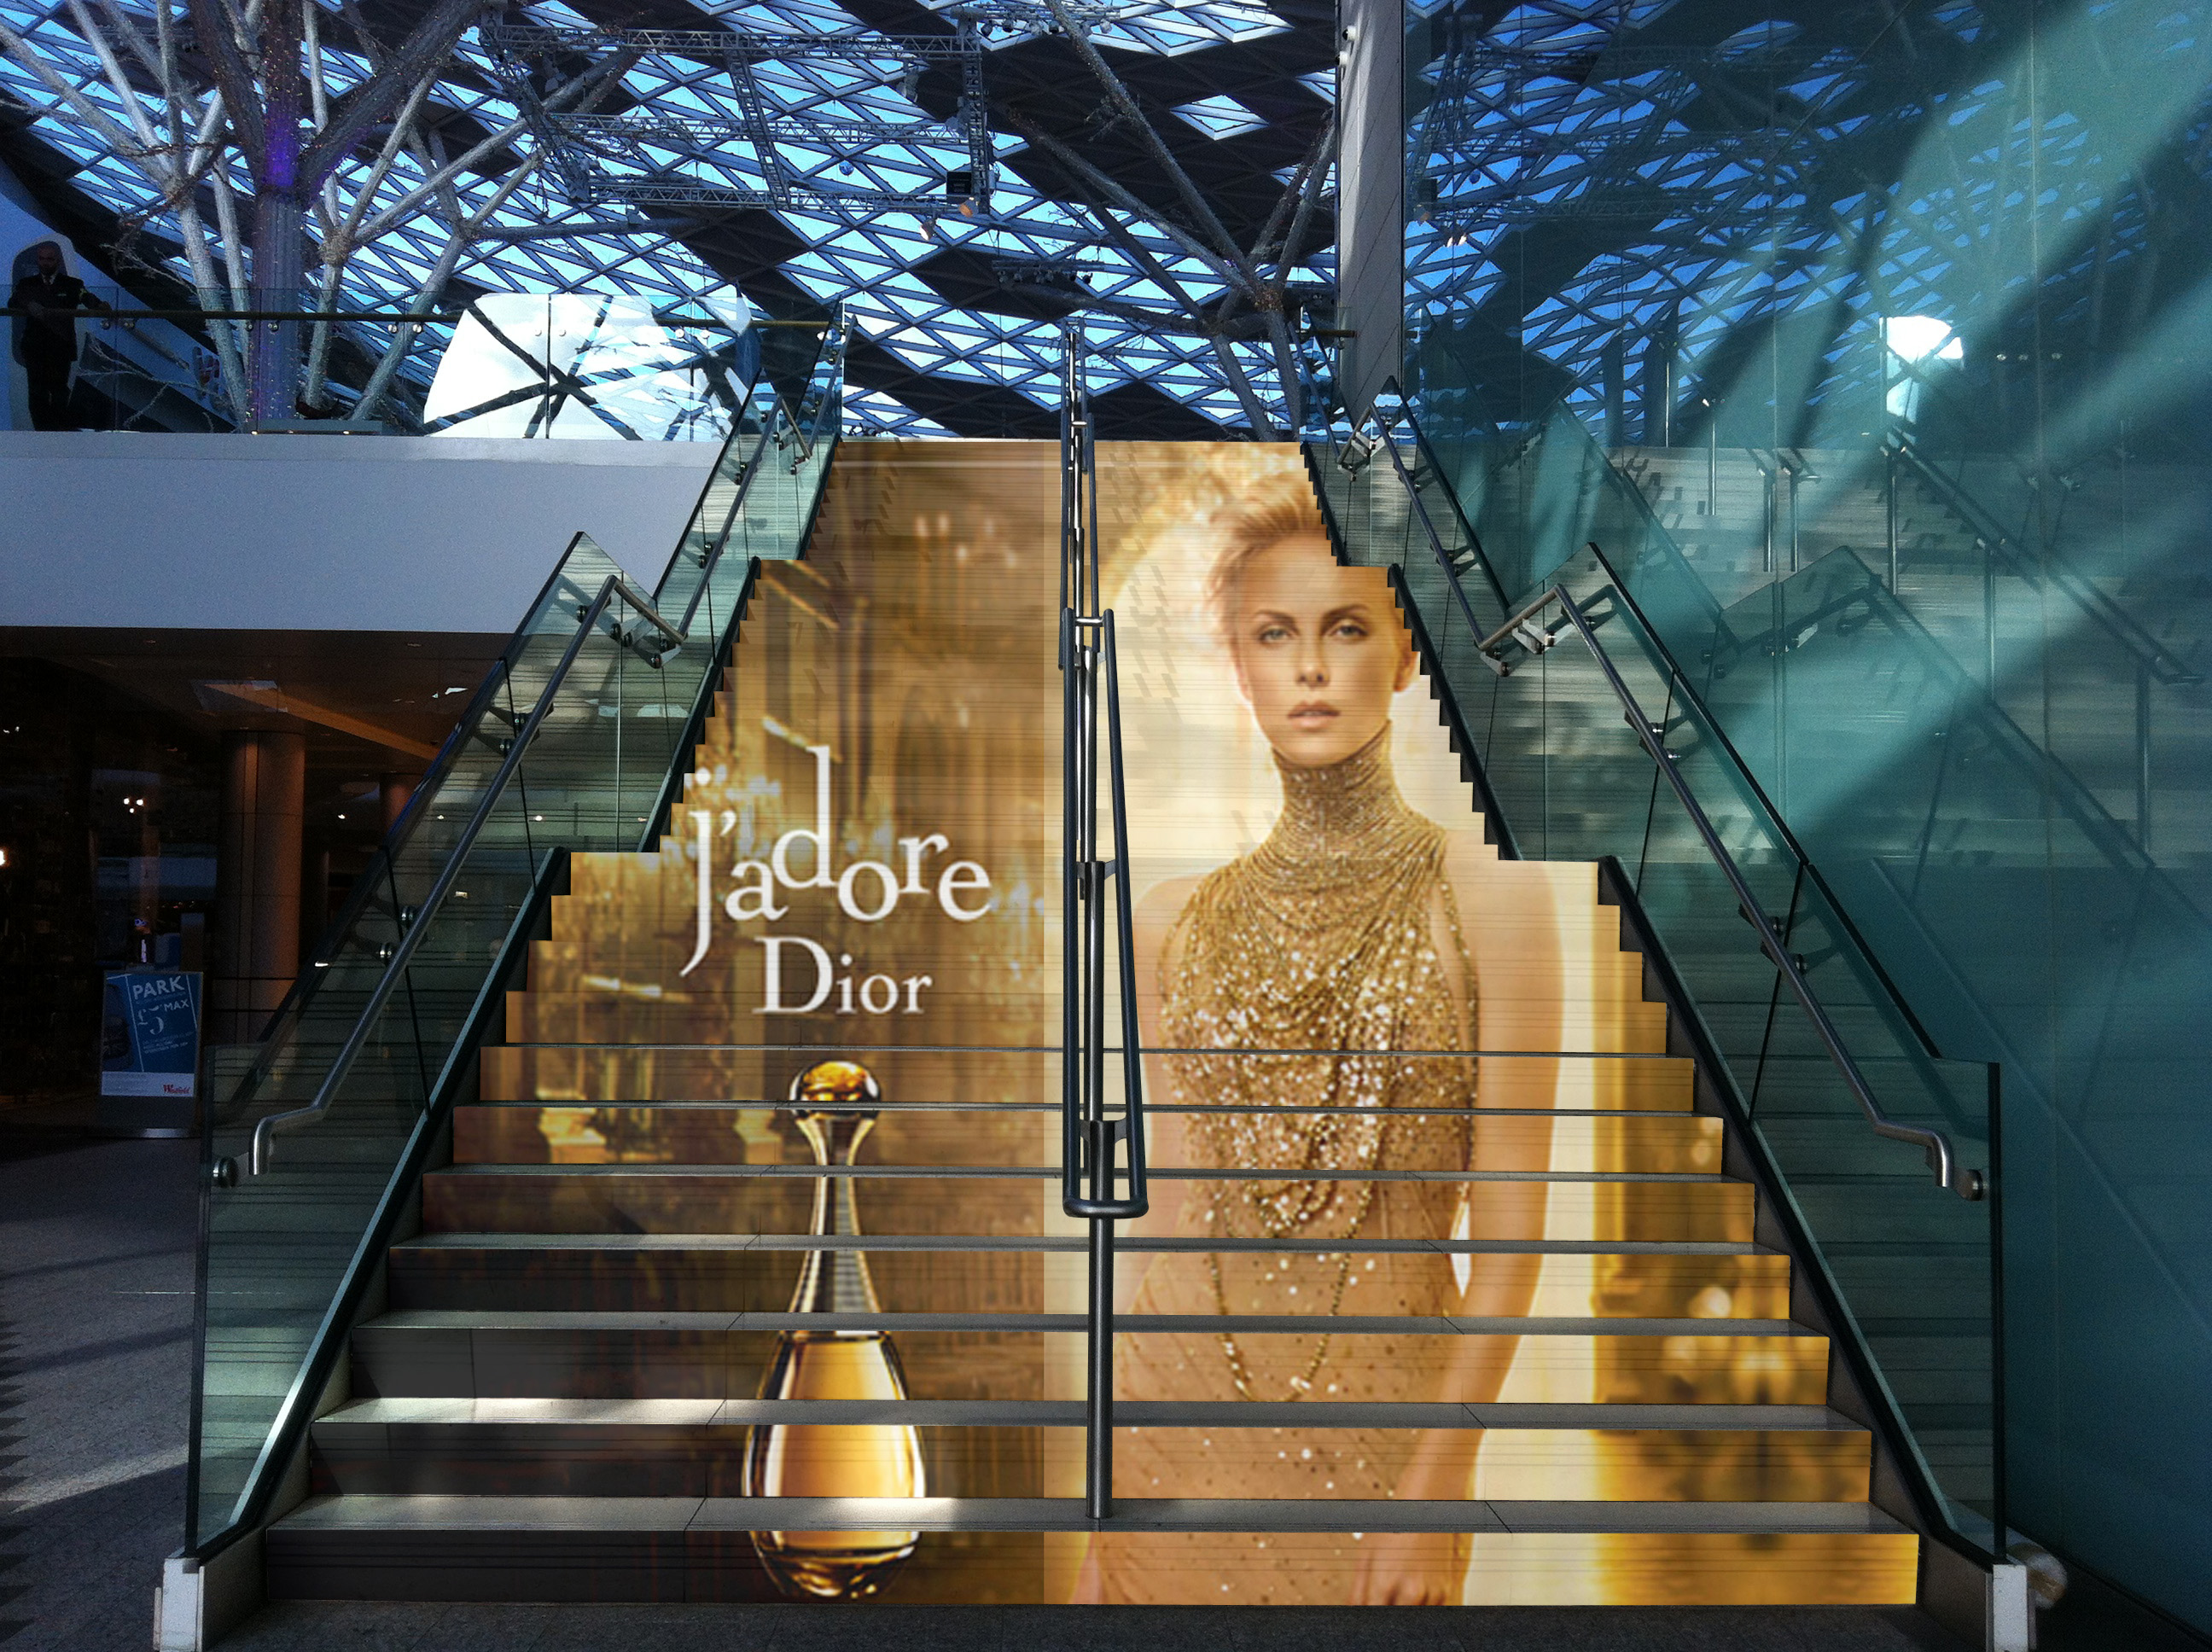 jadore by dior ad Best Gift Idea for Indian bride